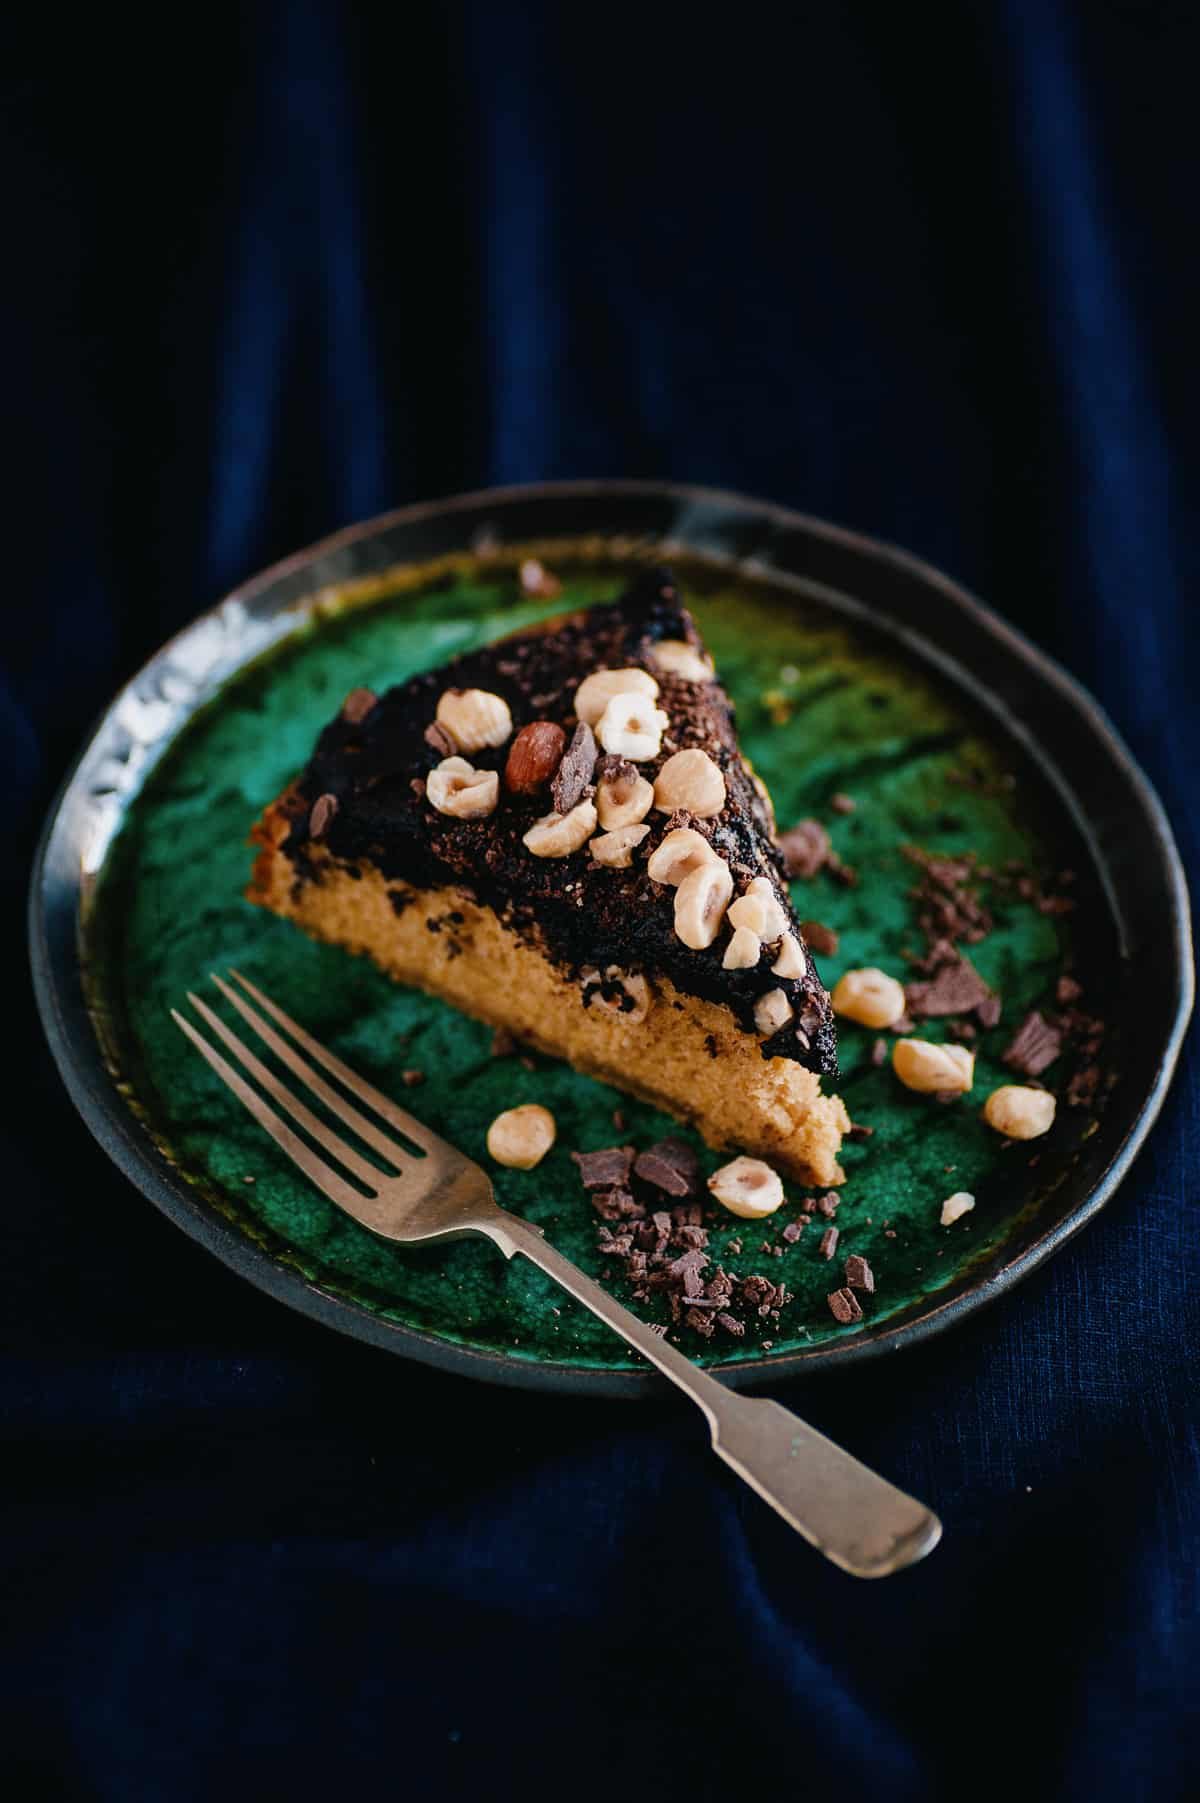 a slice of cake on a plate. the cake is covered in a chocolate spread and covered hazelnuts